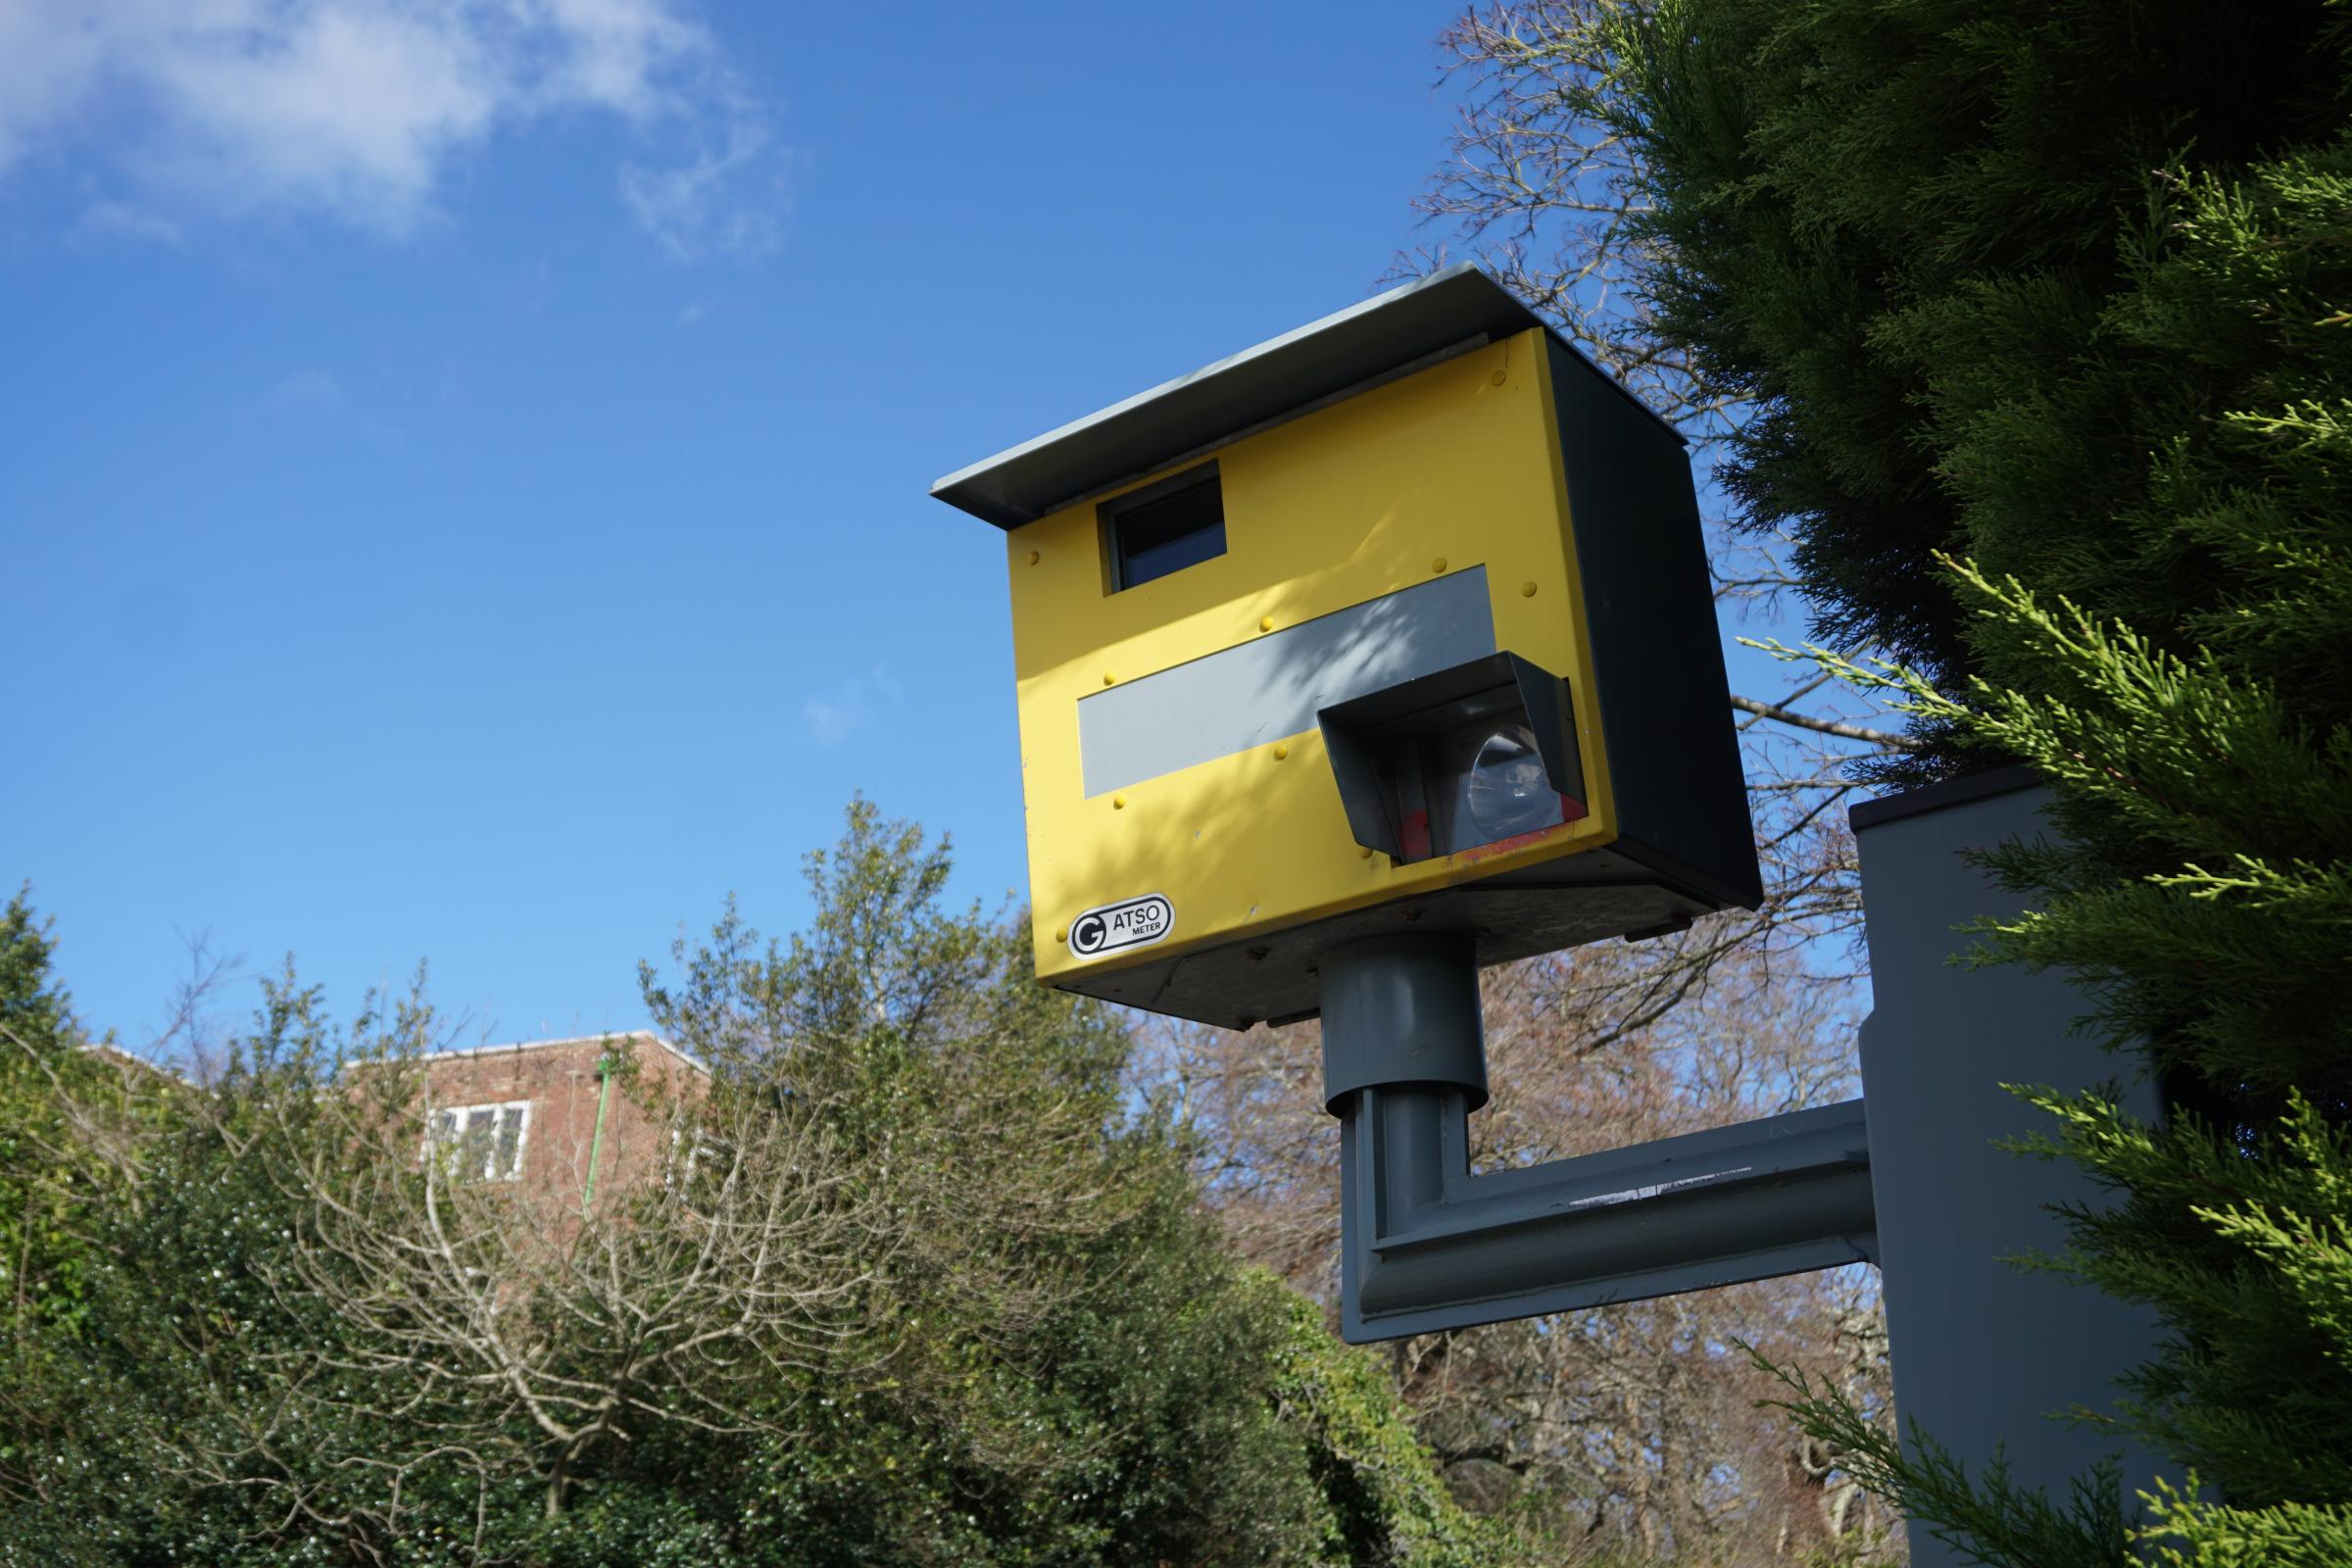 'Grey' speed camera on Wessex Way turns yellow again after clean